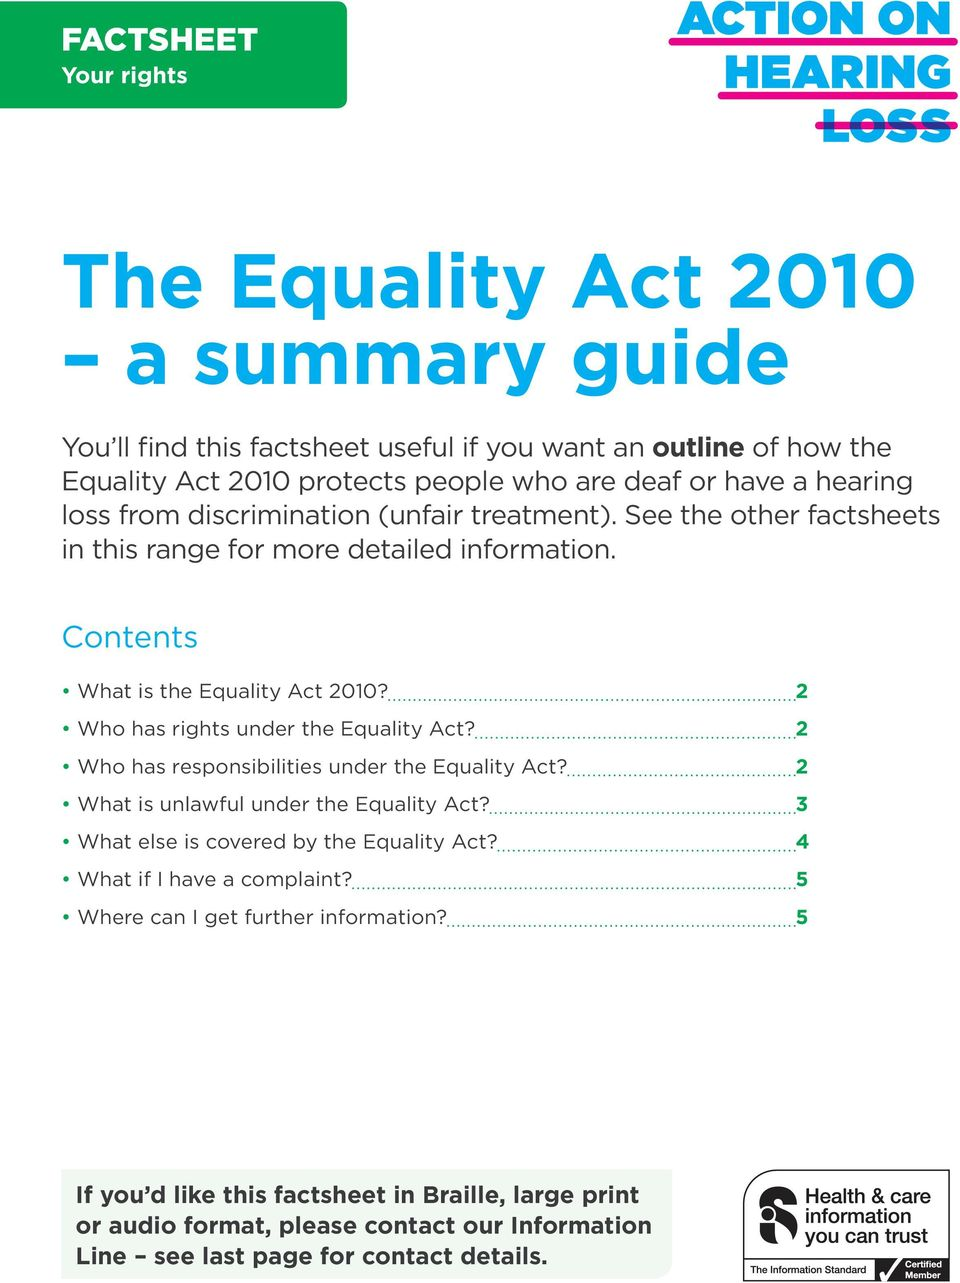 2 Who has rights under the Equality Act? 2 Who has responsibilities under the Equality Act? 2 What is unlawful under the Equality Act? 3 What else is covered by the Equality Act?